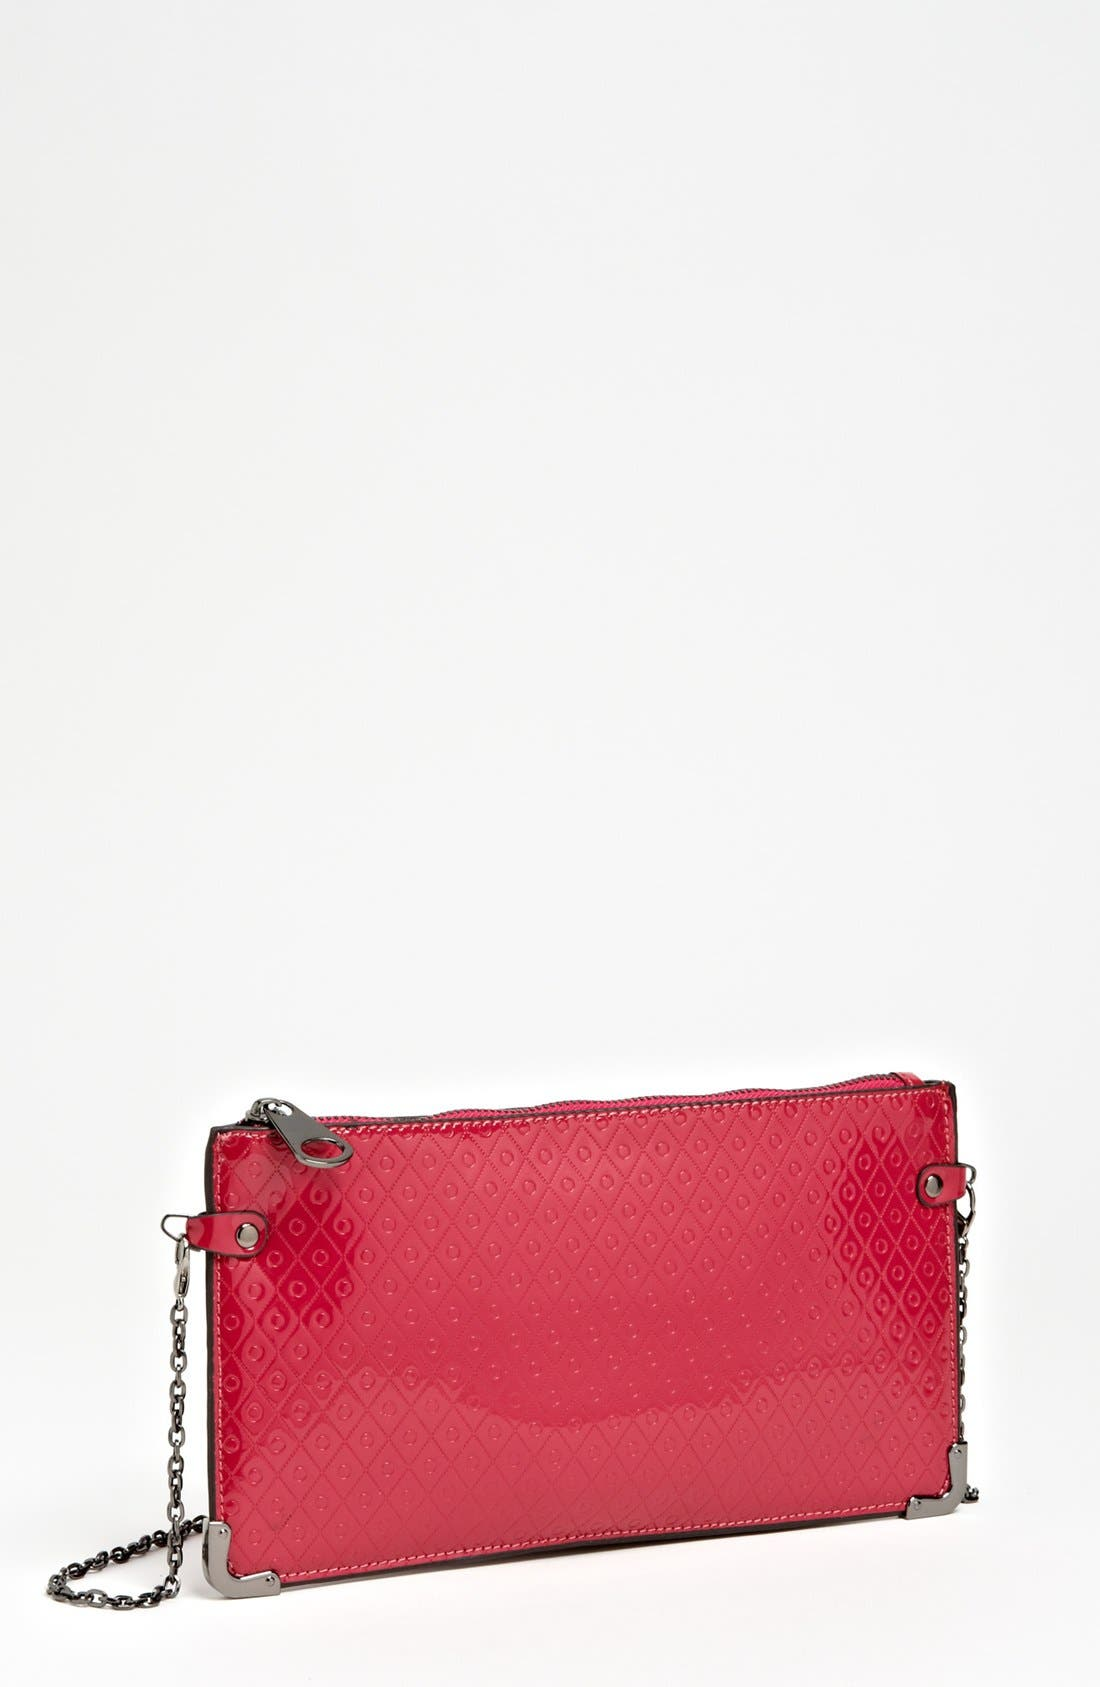 Main Image - POVERTY FLATS by rian Faux Leather Crossbody Clutch